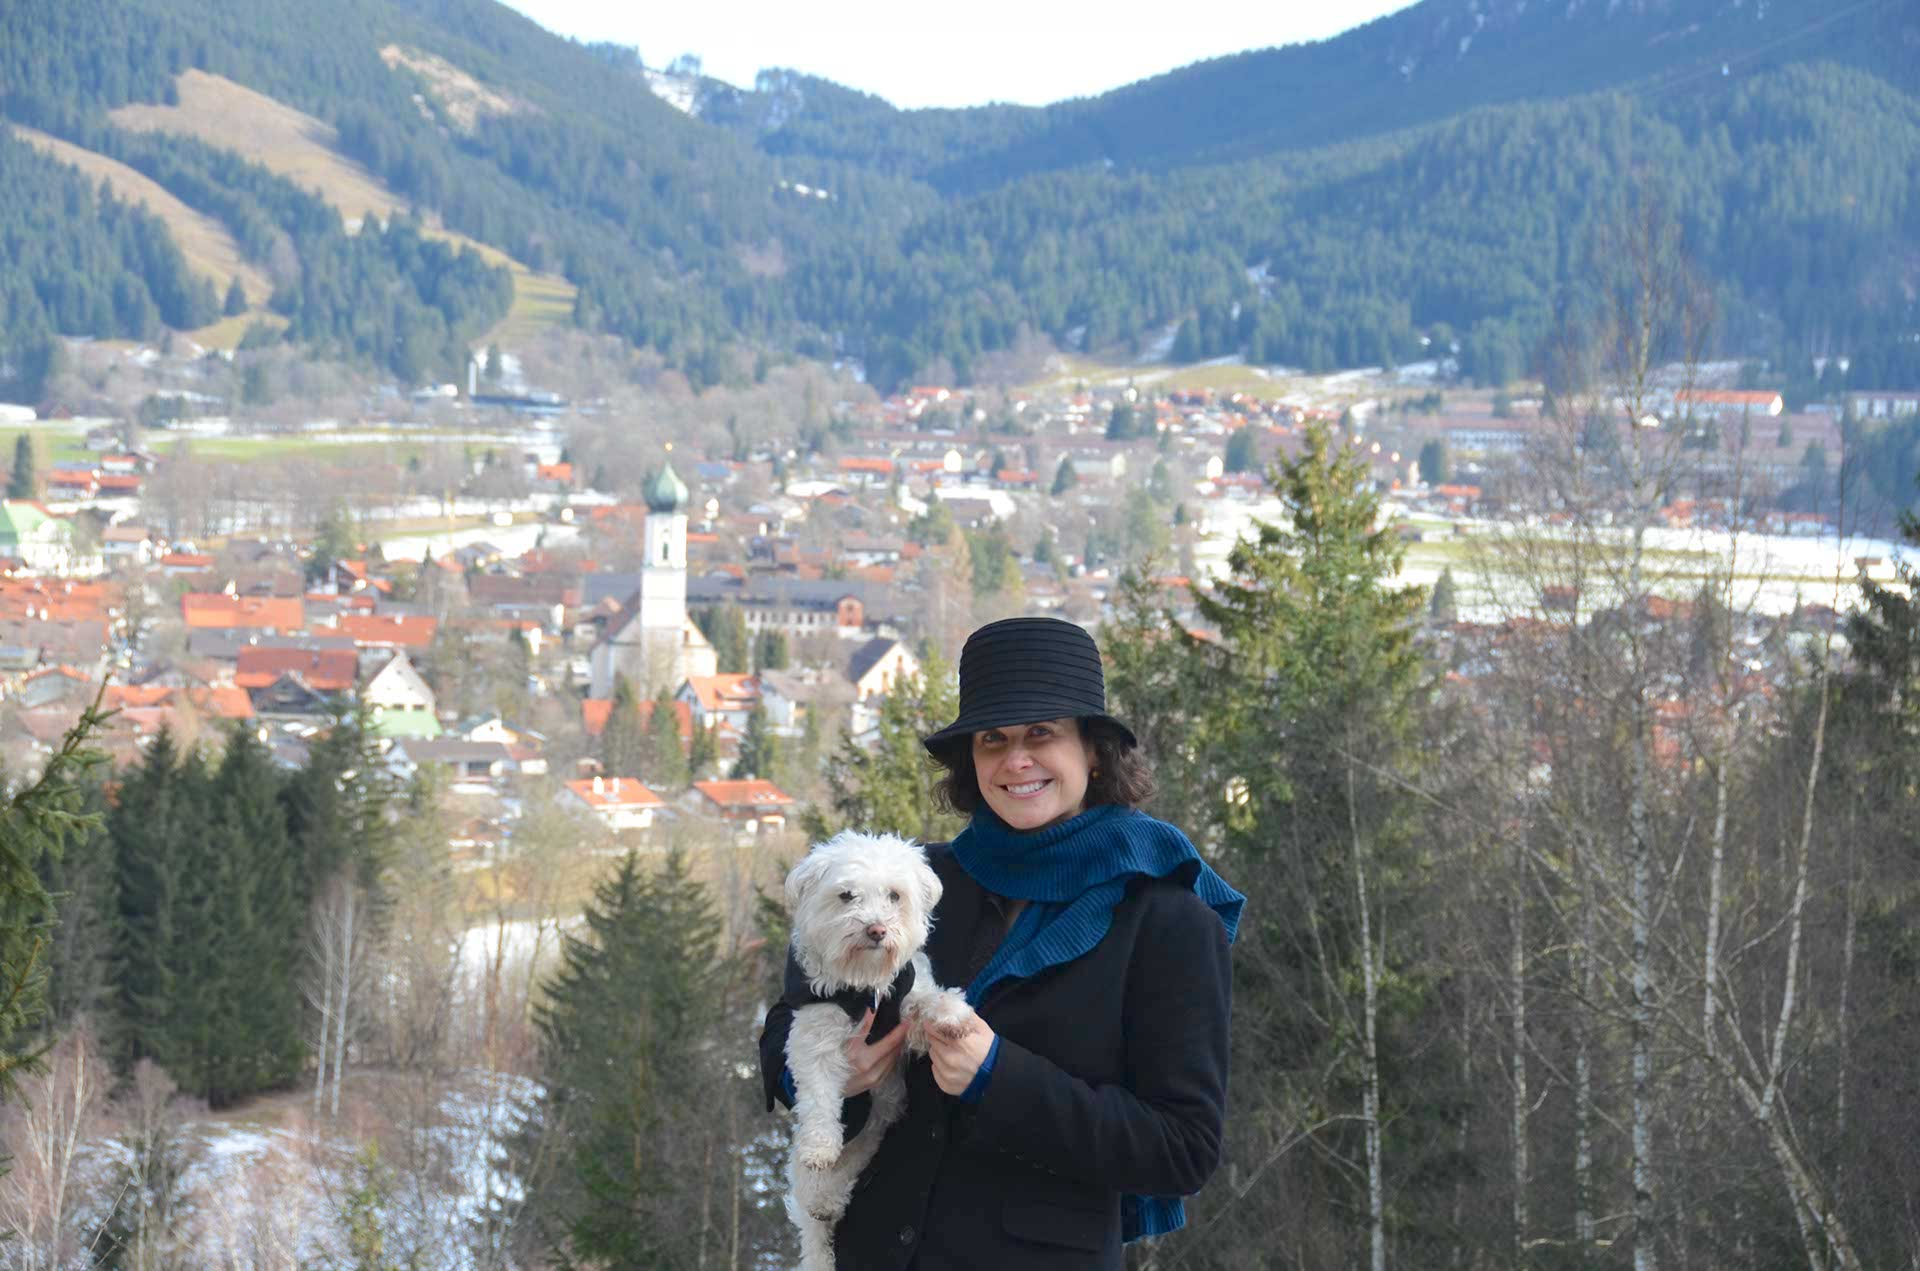 A woman holding a white dog stands outside in nature. The village of Oberammergau is visible behind her, as are forested mountain slopes.